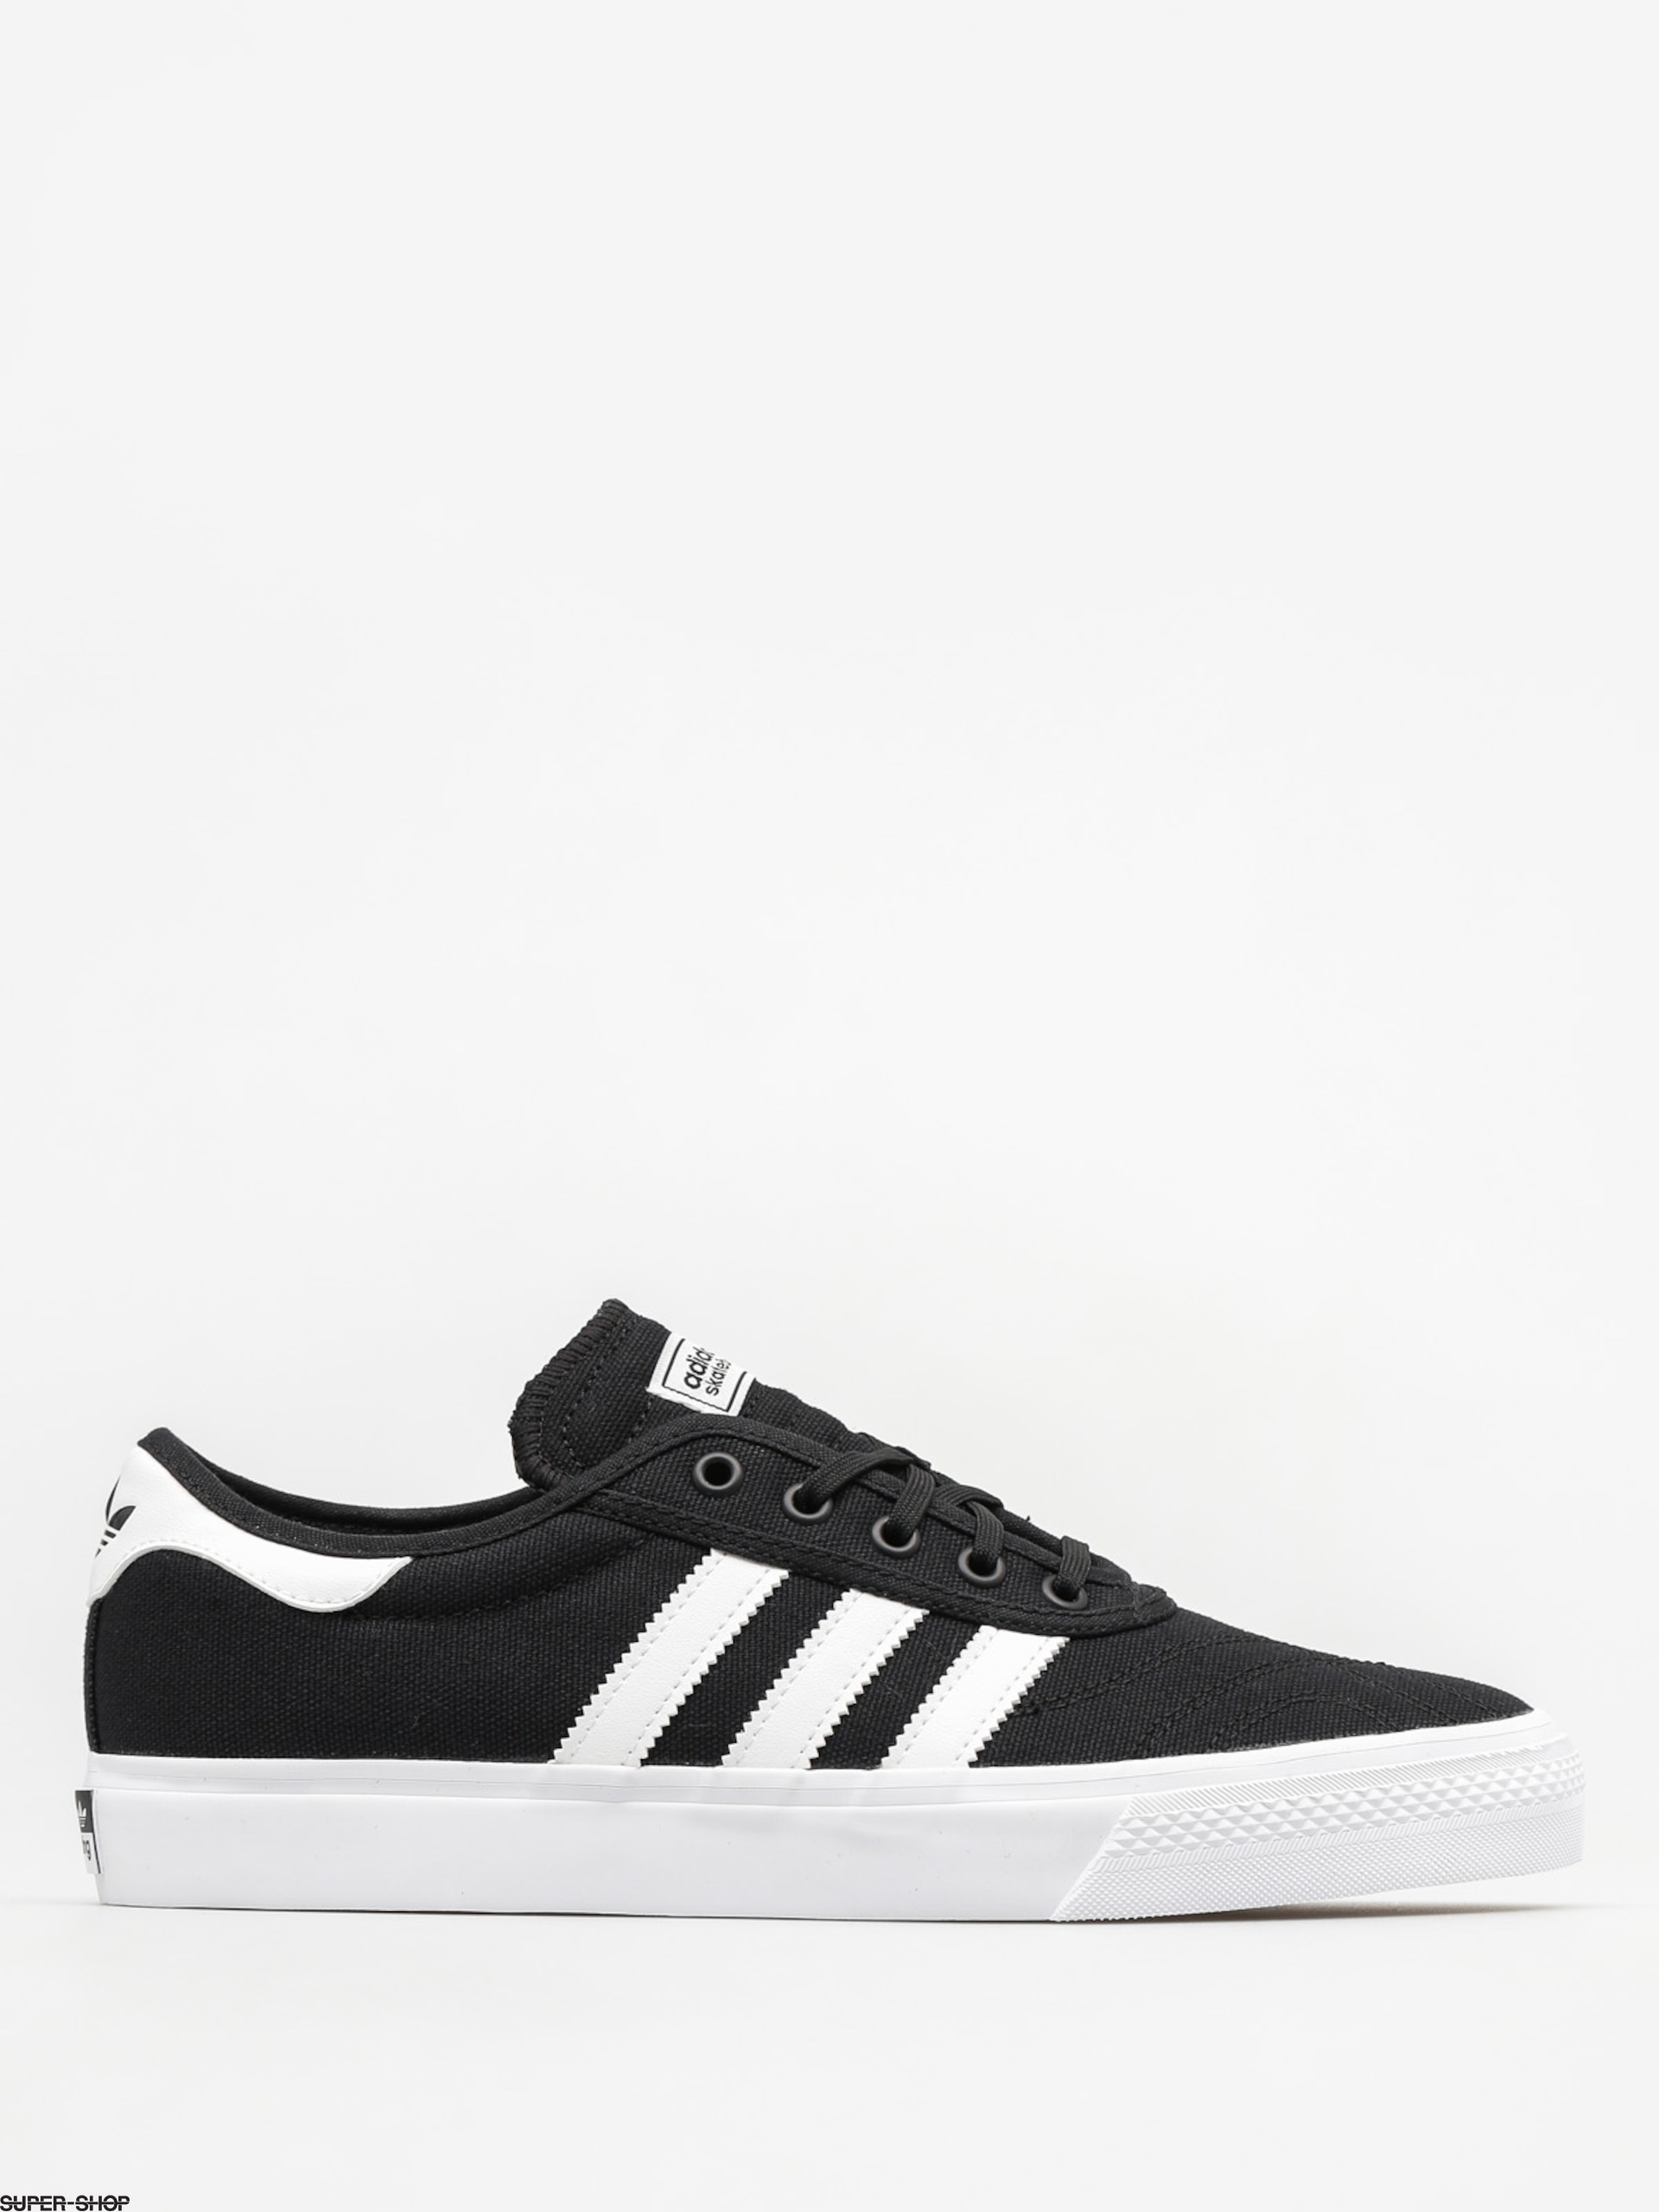 adidas Shoes Adi Ease Premiere (core black/ftwr white/gum4)